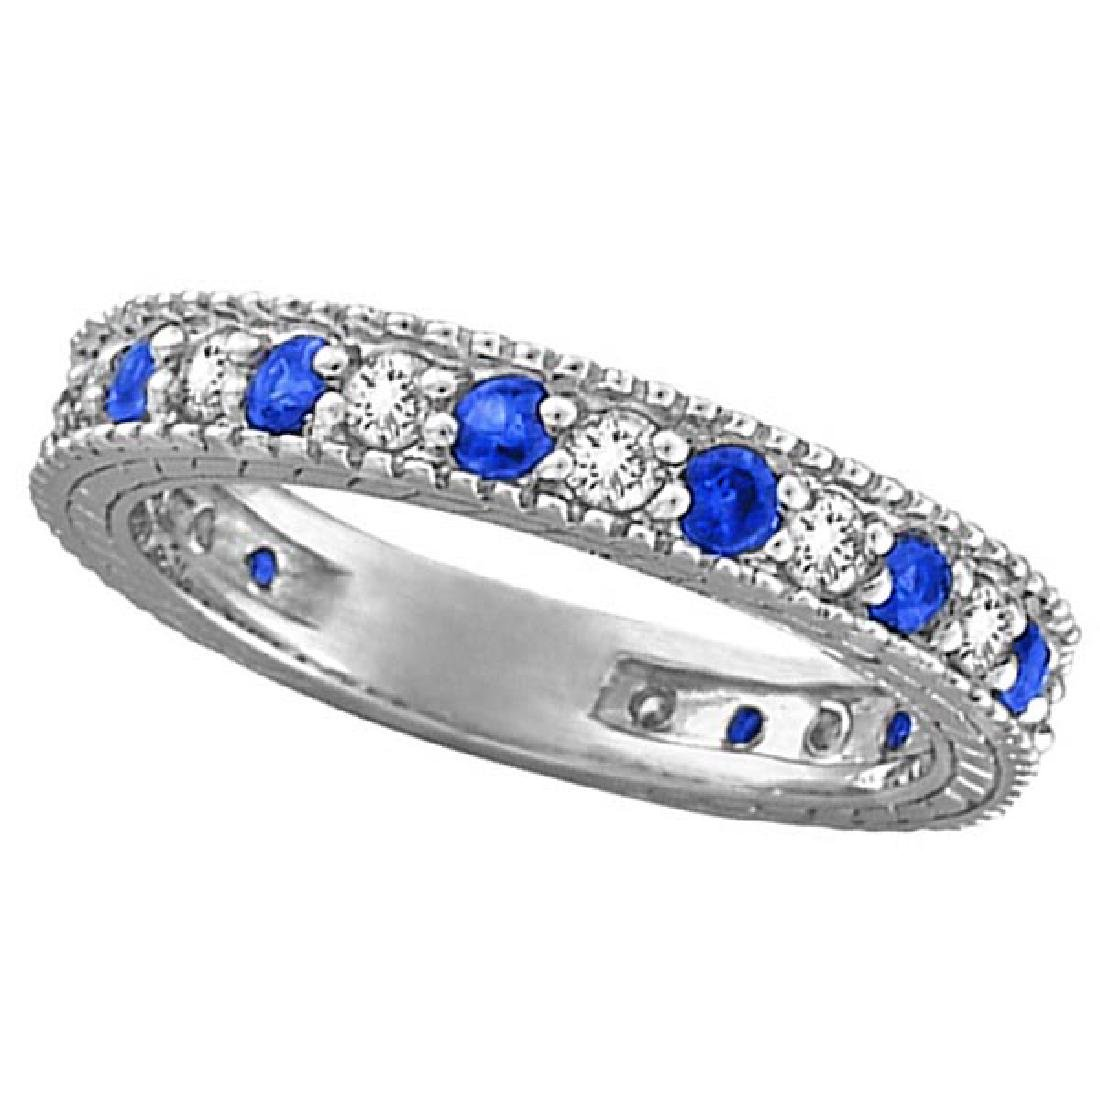 Diamond and Blue Sapphire Anniversary Ring Band in 14k